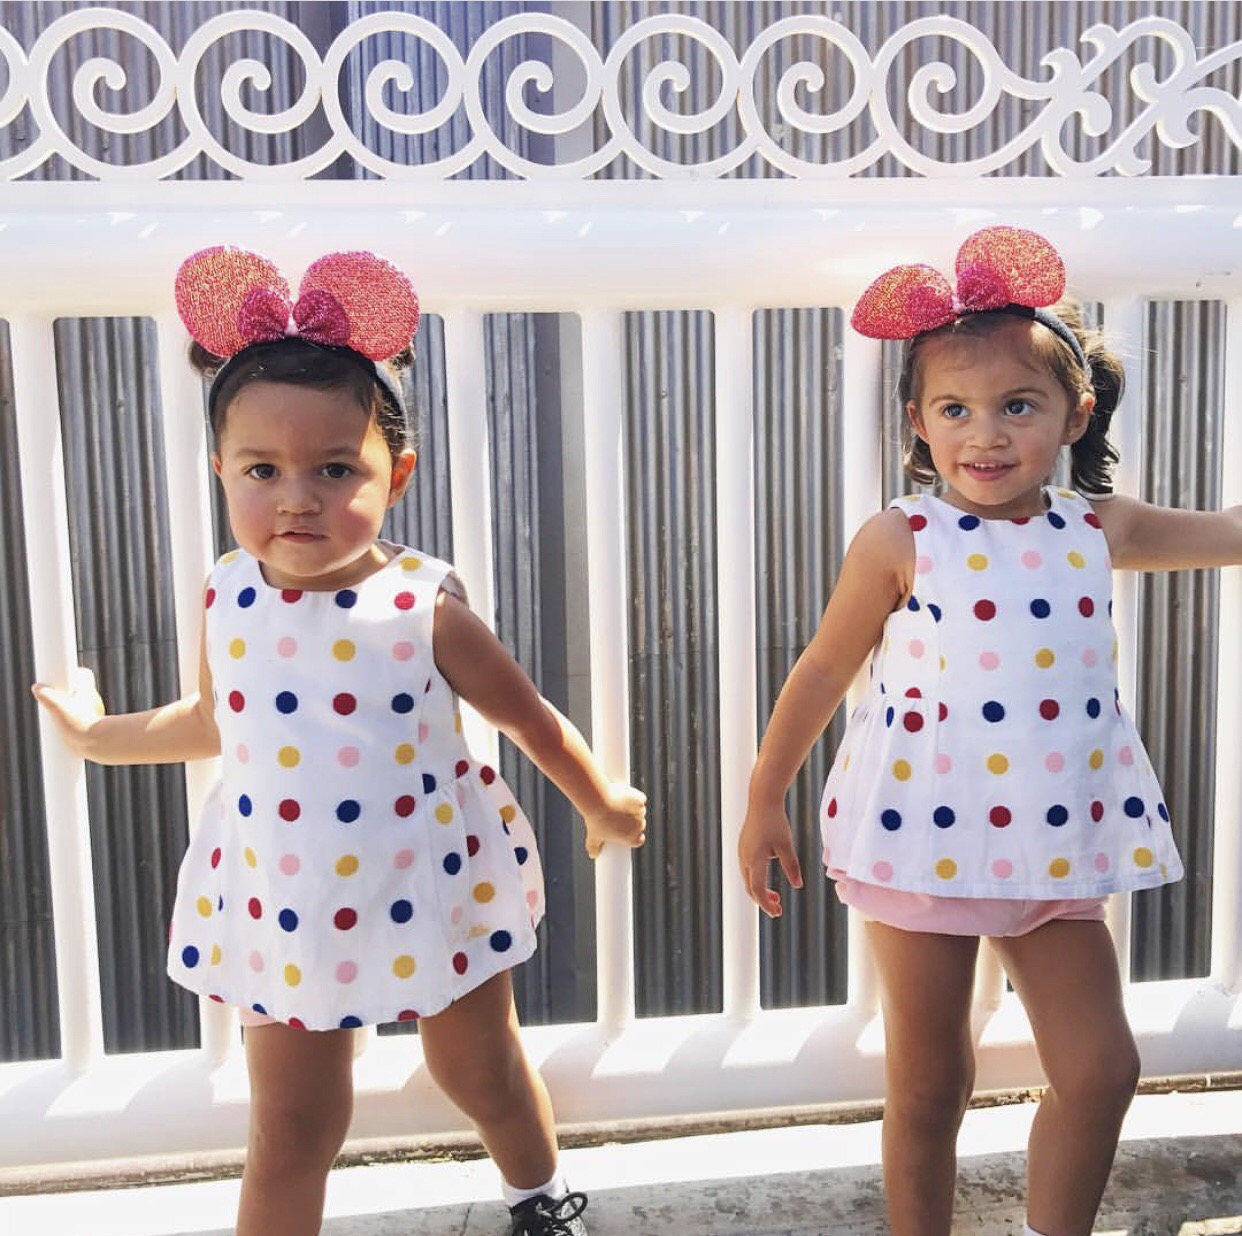 a8c3f020f 10 cant-miss Disney outfit ideas for toddler girls - Gone with the twins